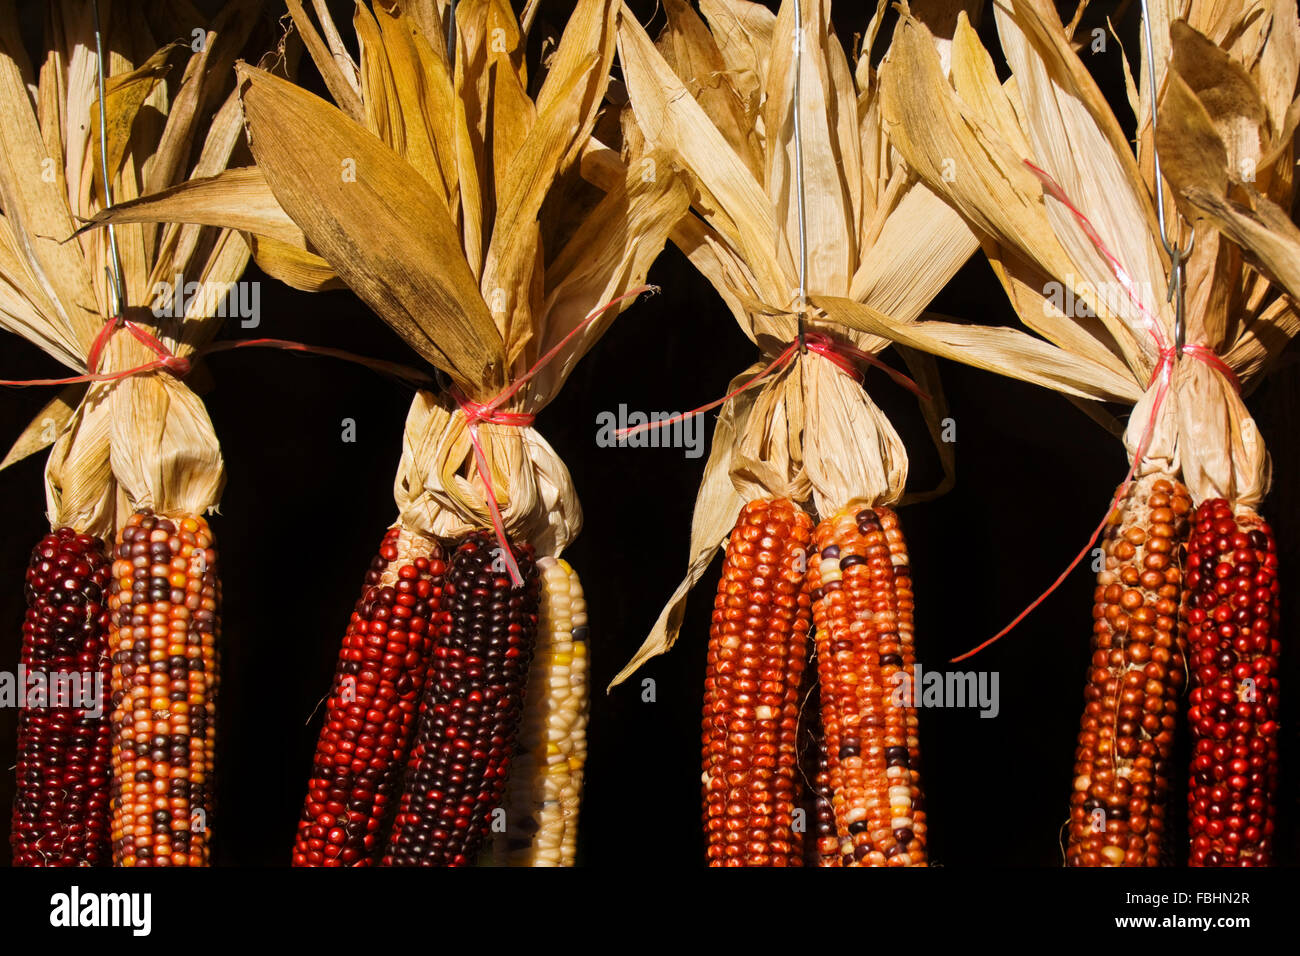 Hanging ears of Indian corn in an open farmers market - Stock Image